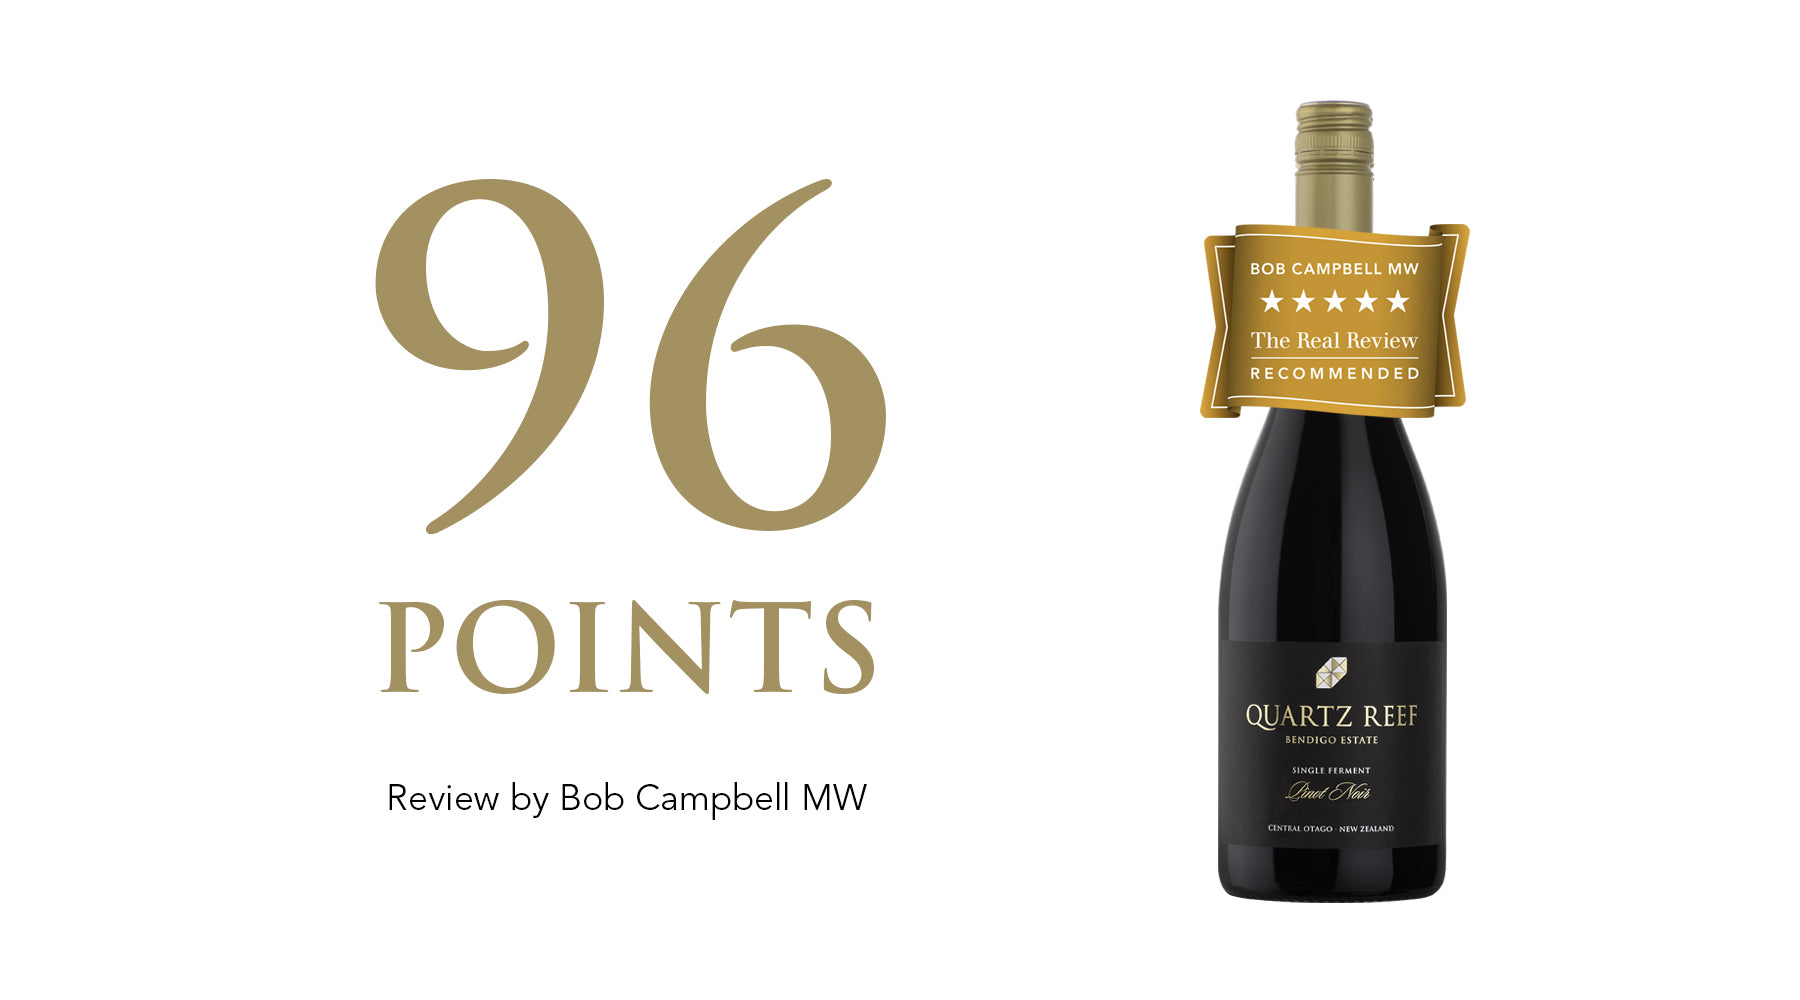 Single Ferment Pinot Noir 2019 - Awarded 96 Points